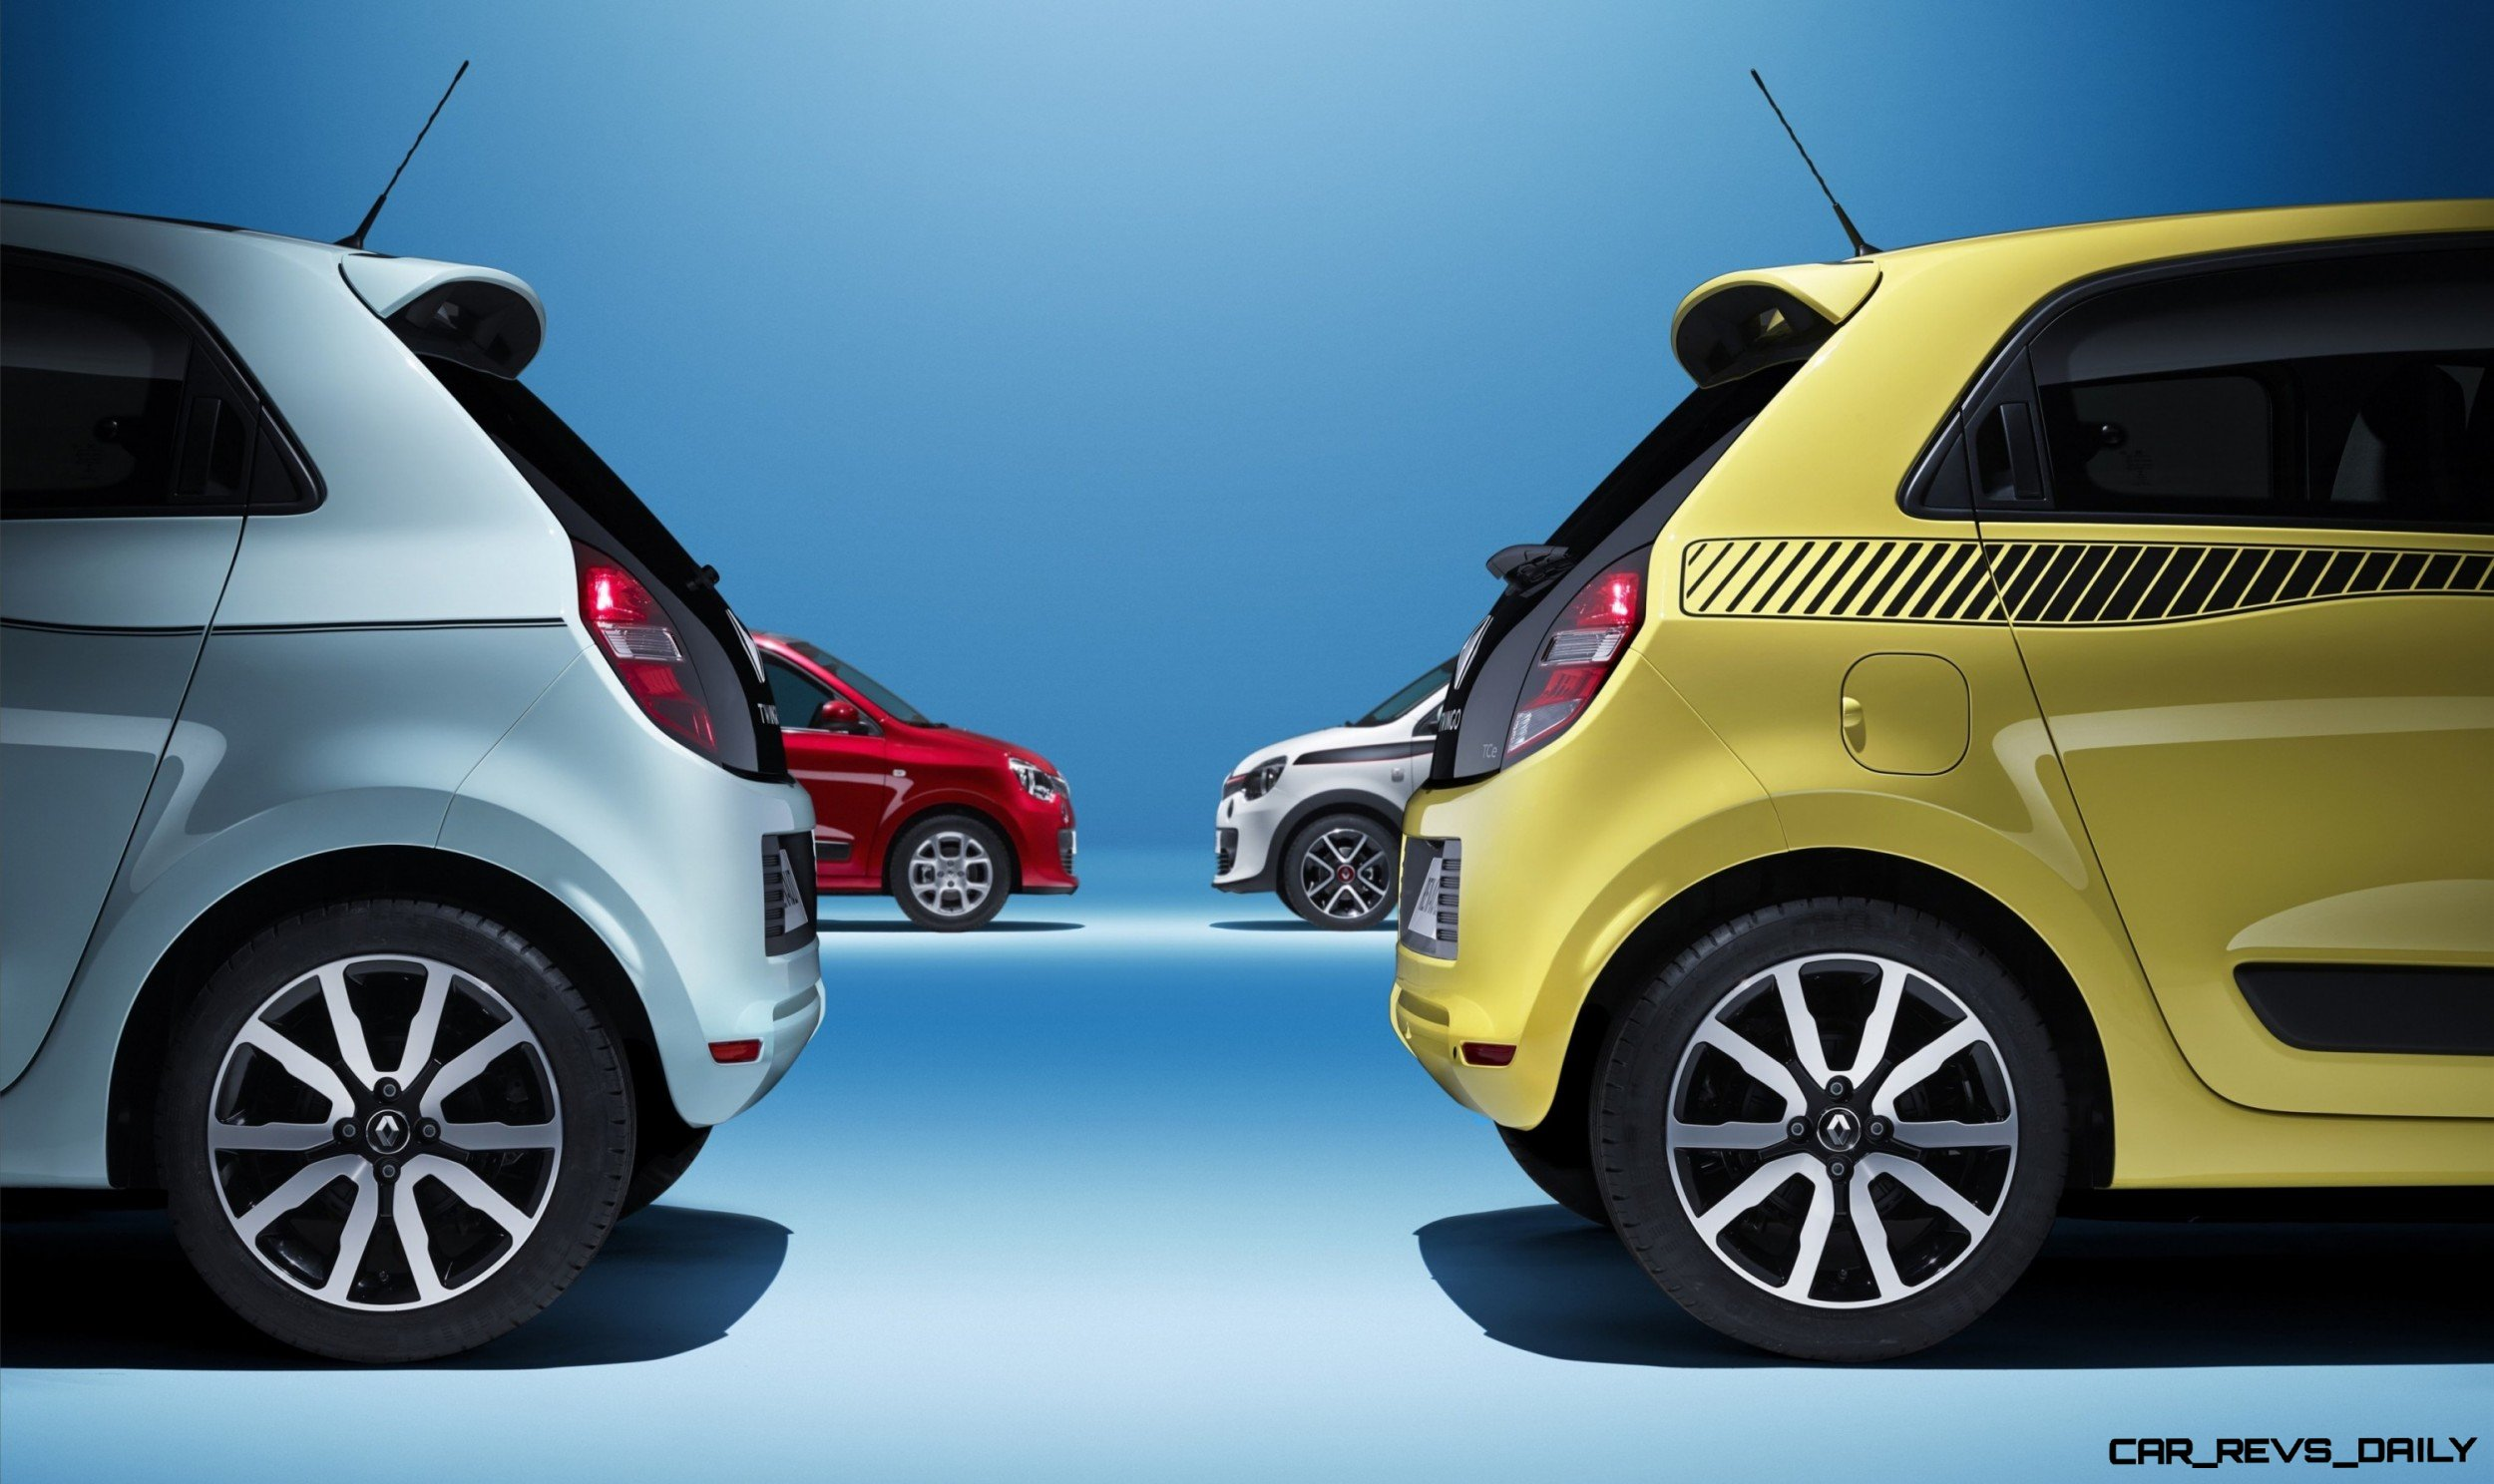 All New Renault Twingo Packs Rear Engine Four Doors And Cute New Style